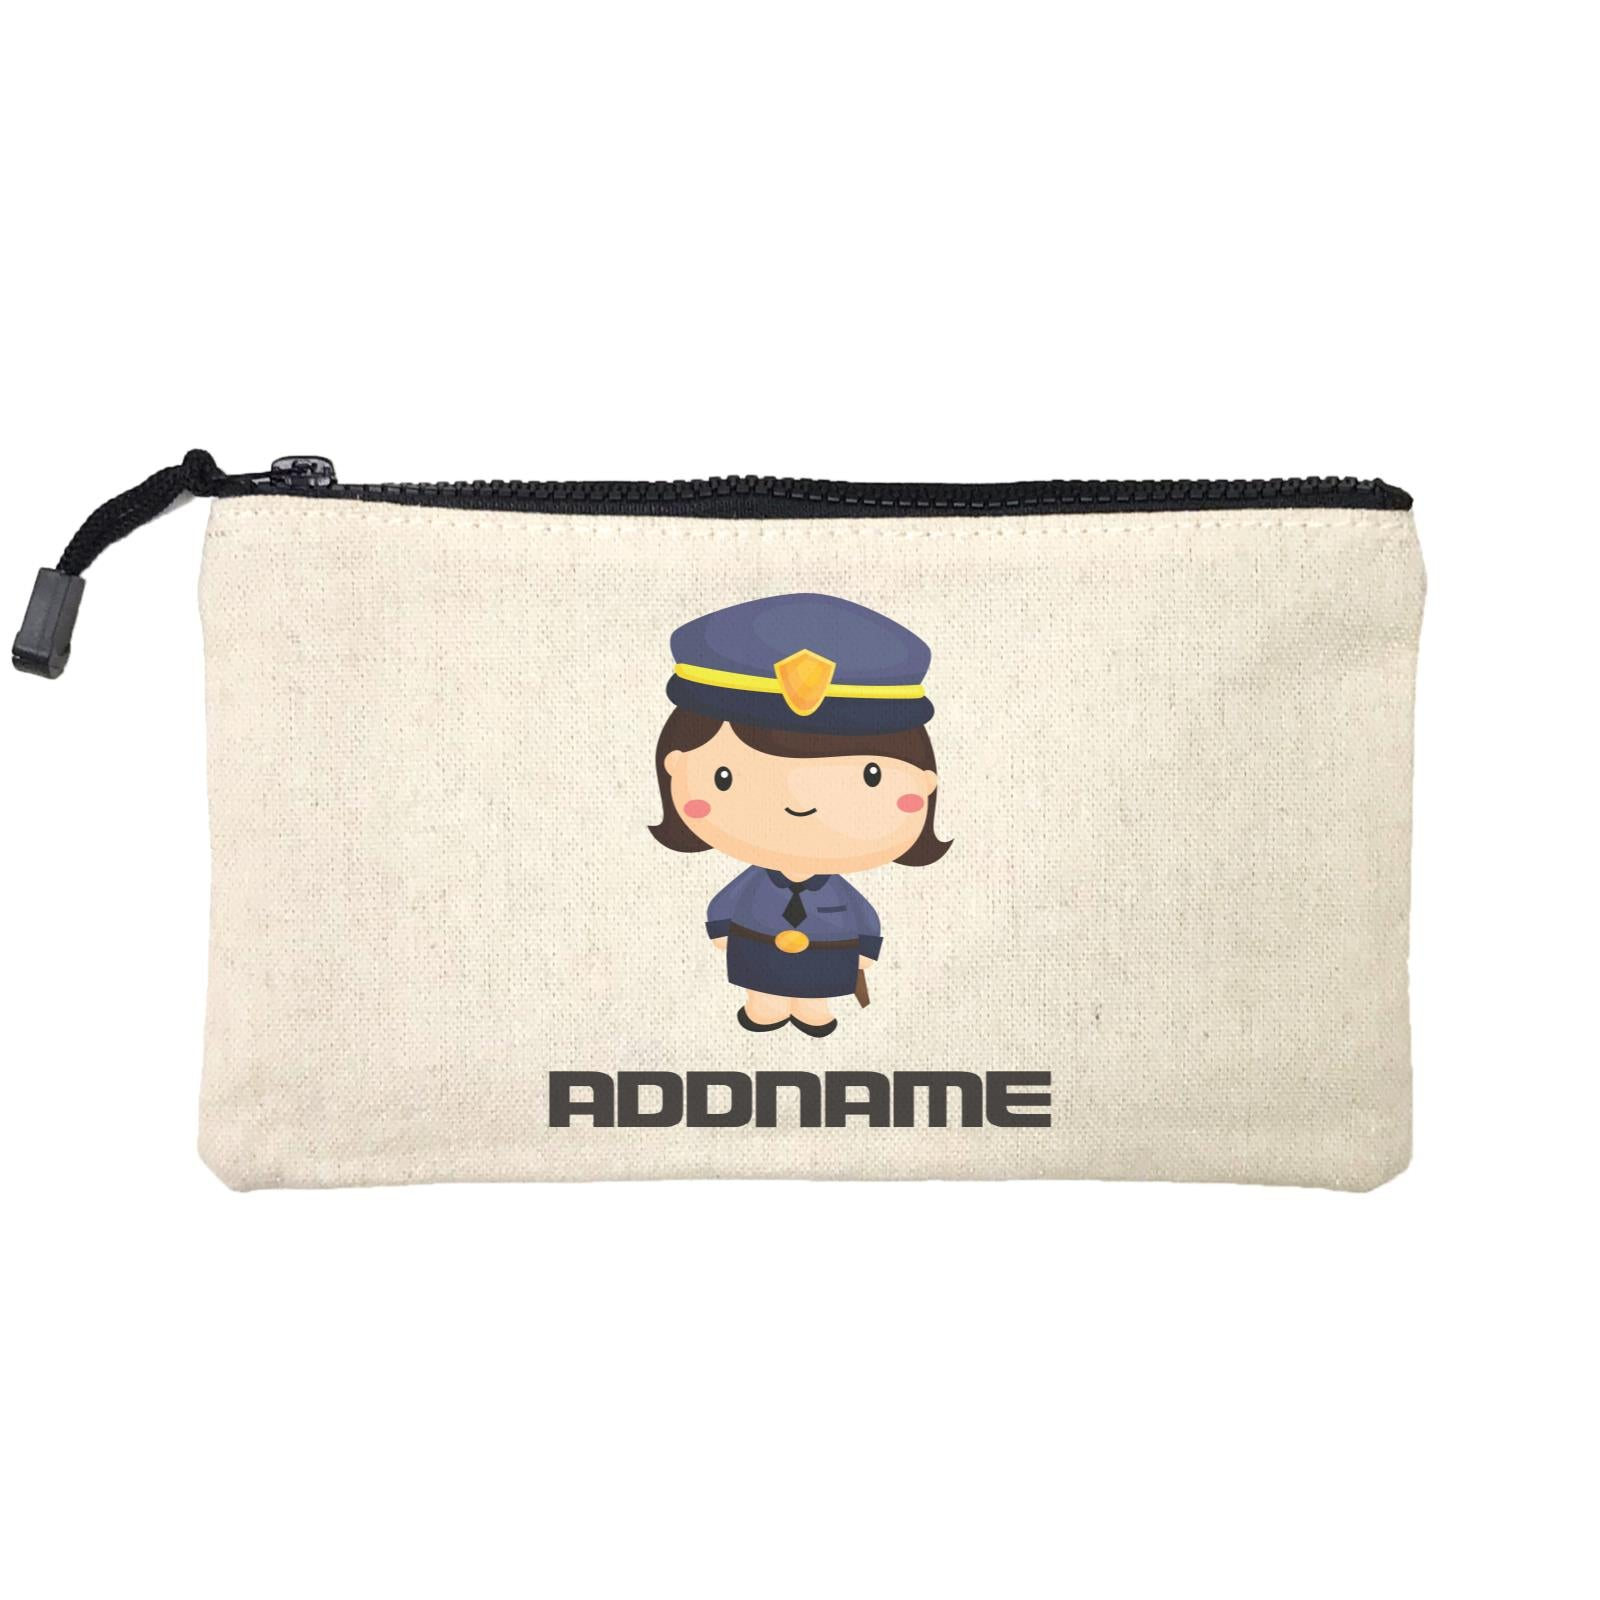 Birthday Police Officer Short Hair Girl  In Suit Addname Mini Accessories Stationery Pouch